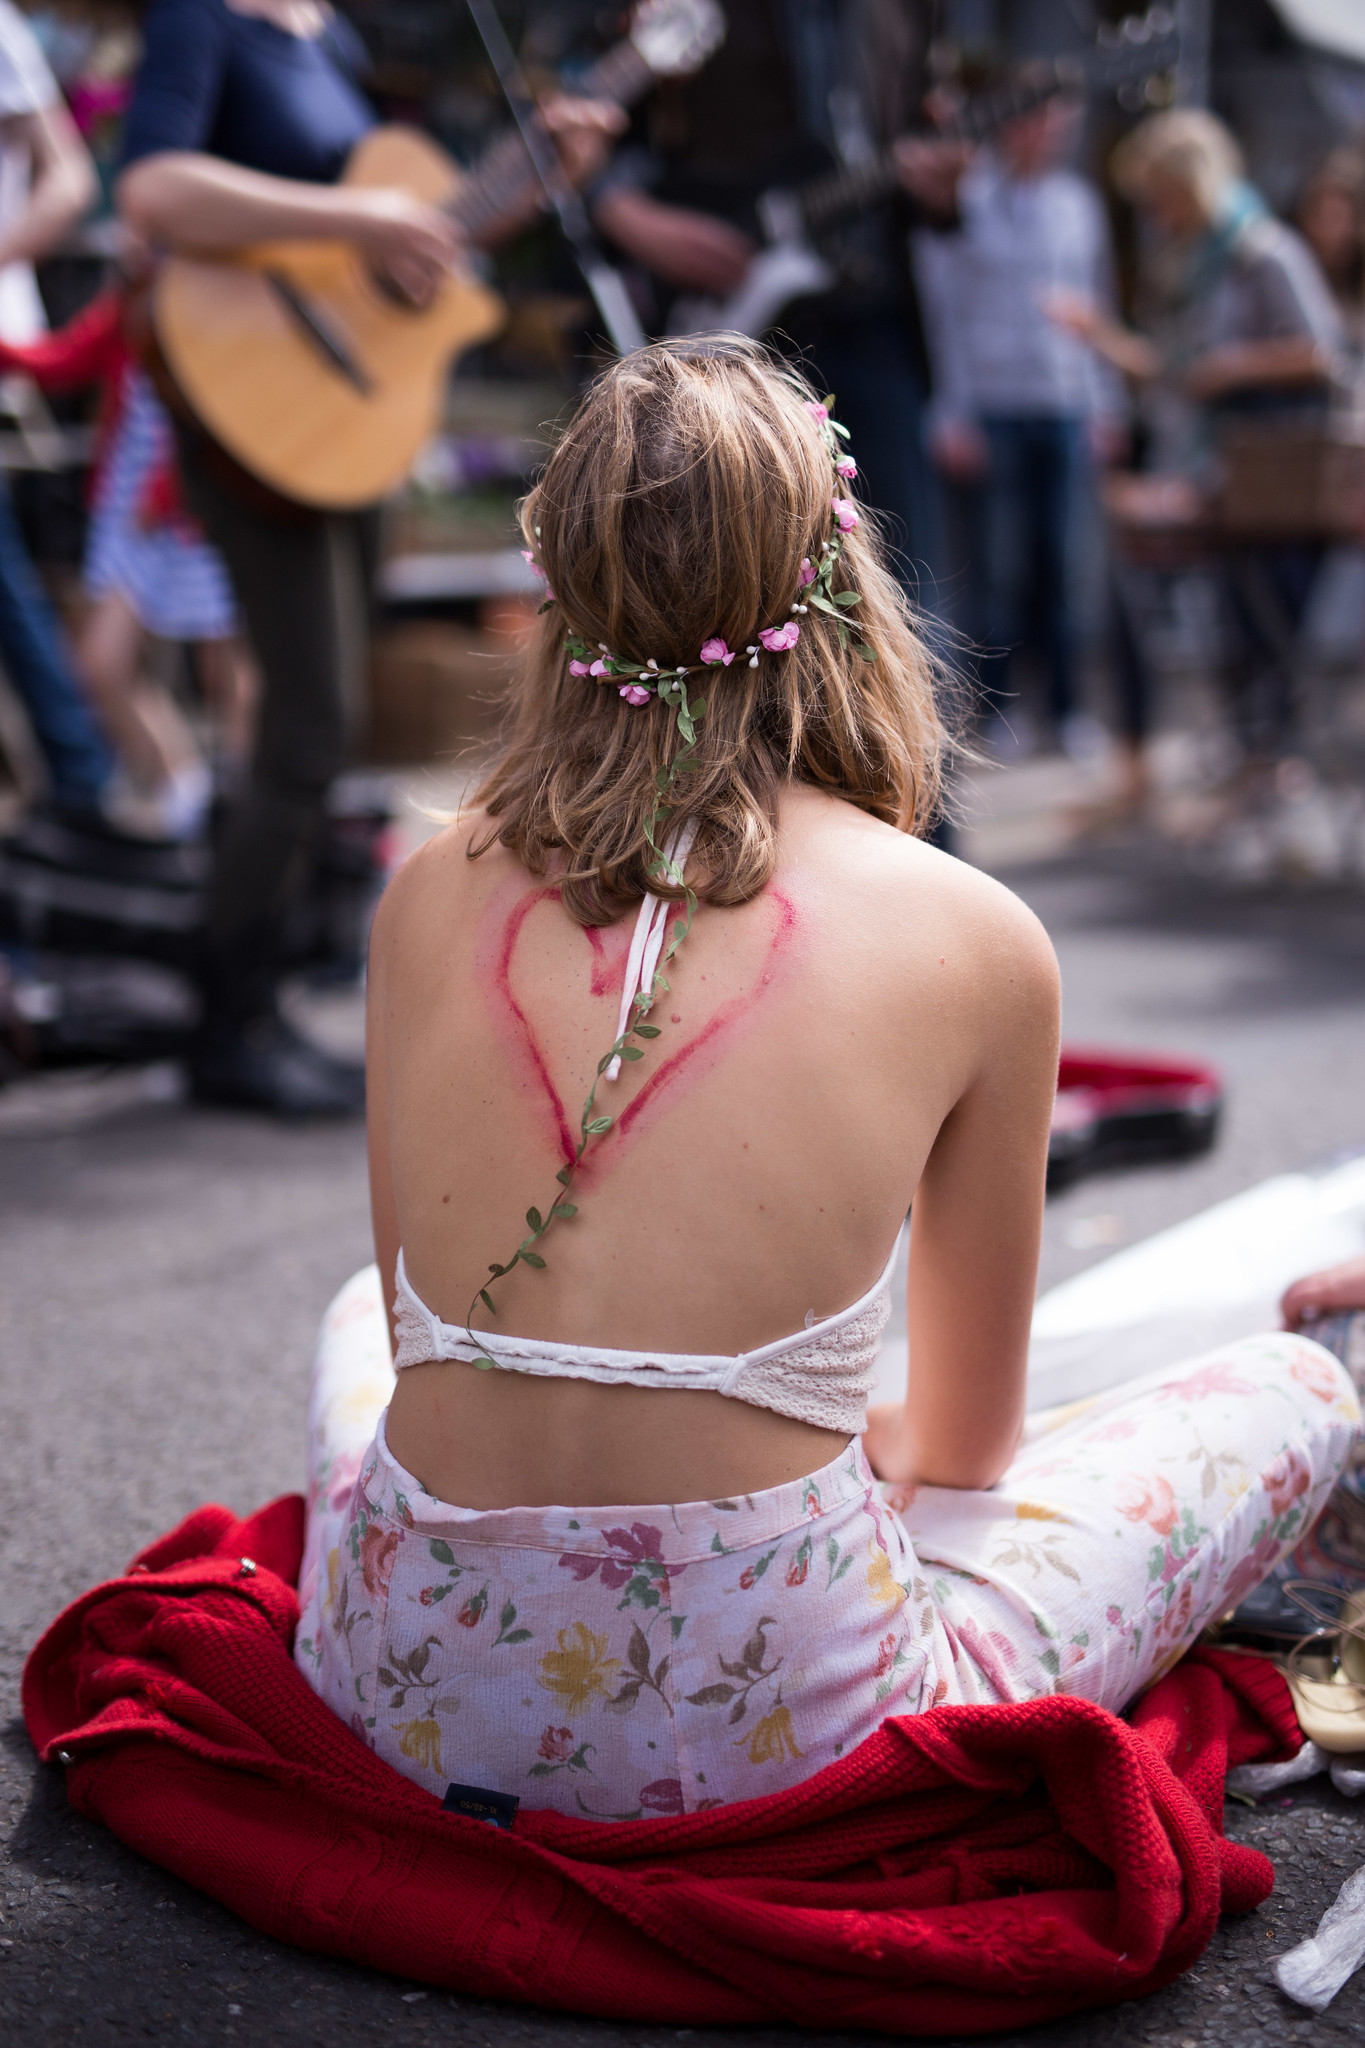 Street Style - Flower Child, Columbia Road